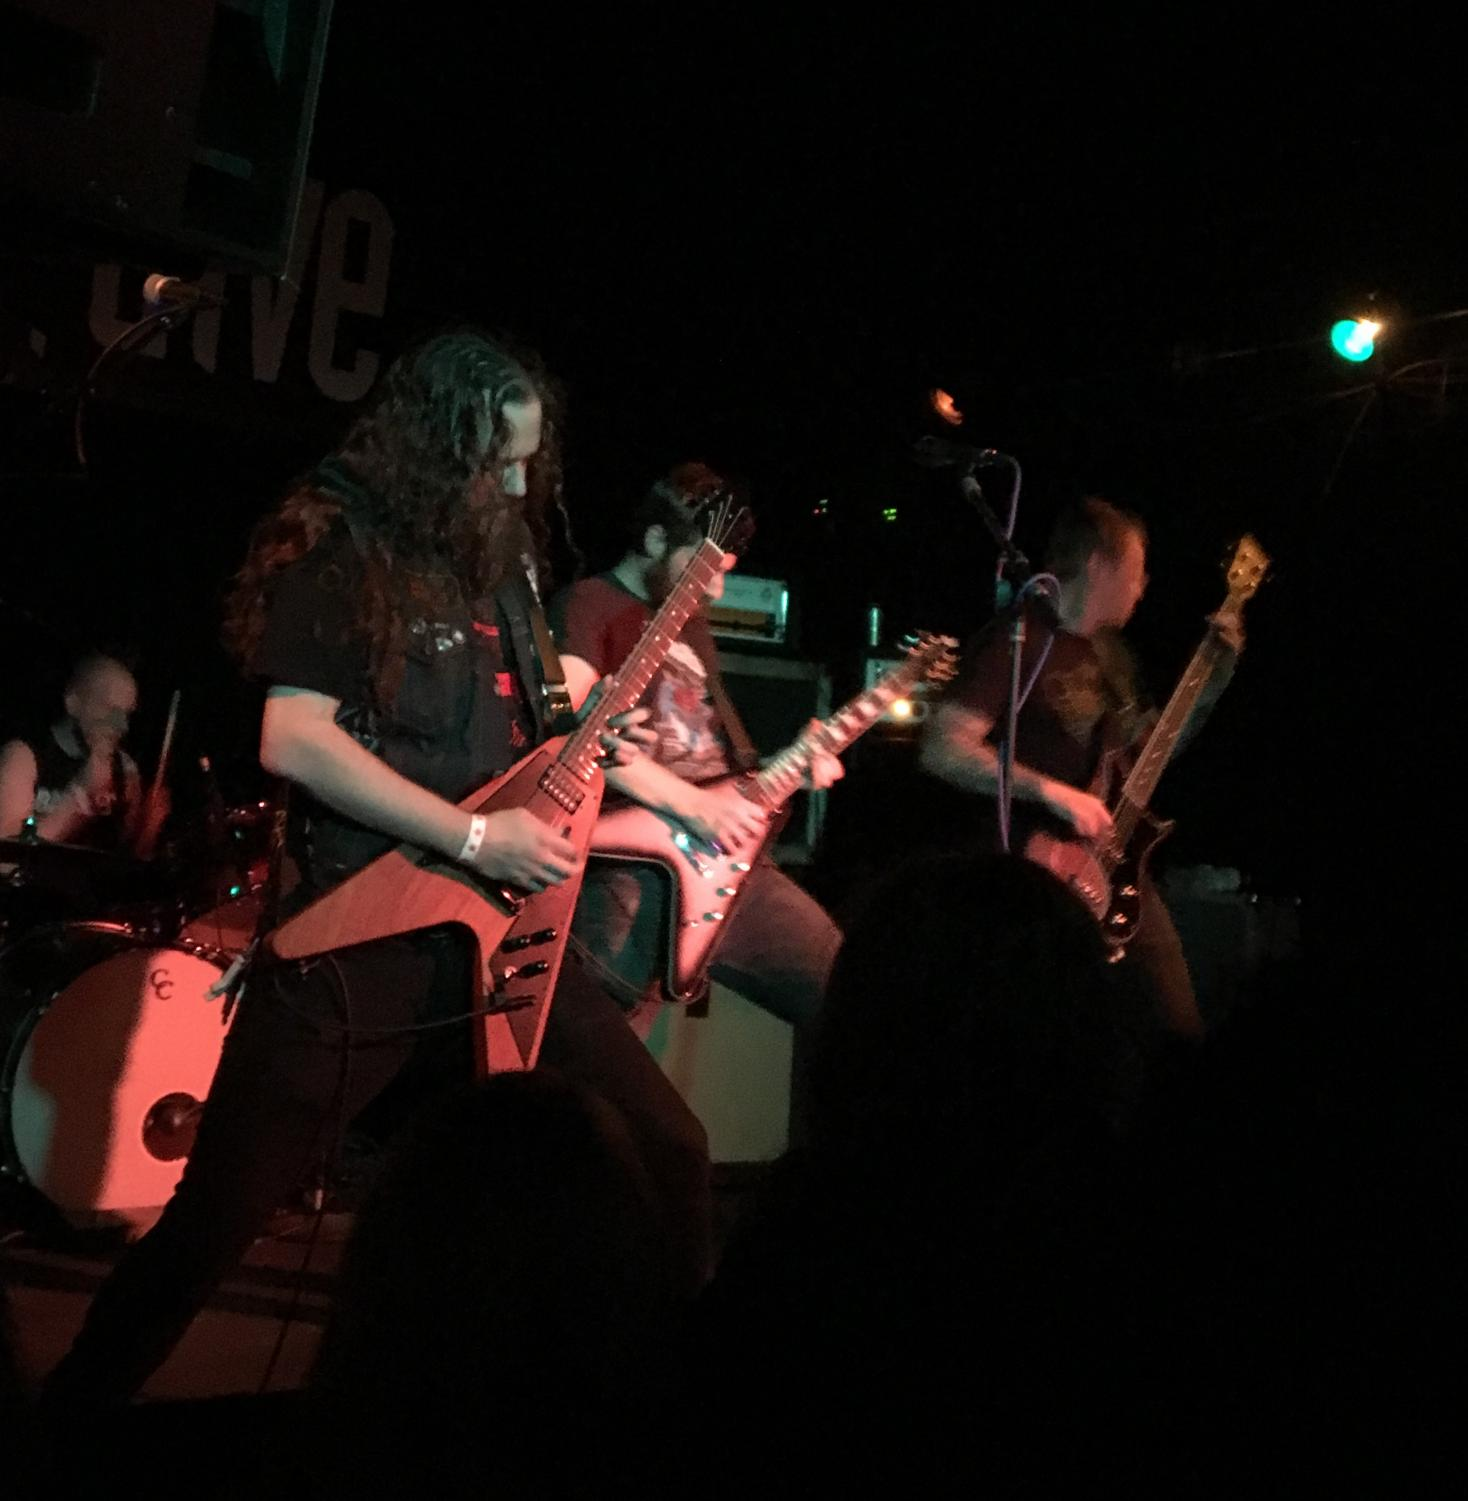 Khemmis performing at the Hi-Dive on Saturday, October 14, 2017 Left to right: drummer Zach Coleman, guitarist/vocalists Ben Hutcherson and Phil Pendergast, and bassist Dan Beiers. Photo by Jake Tharan.